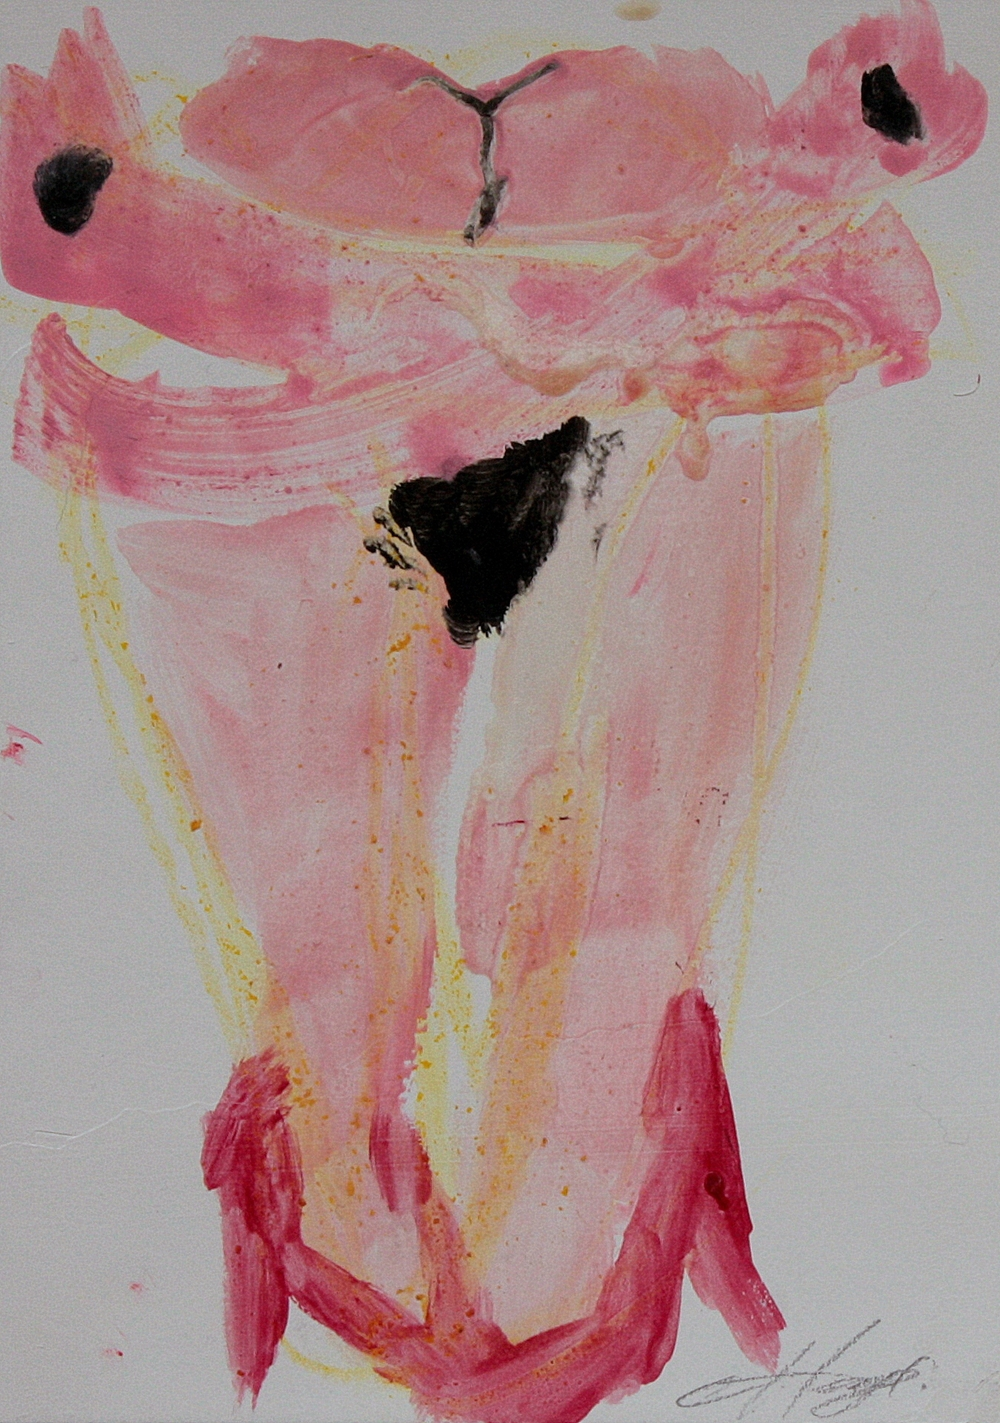 PINK CRUCIFIXION   oil on paper, 12.5x17.5cm